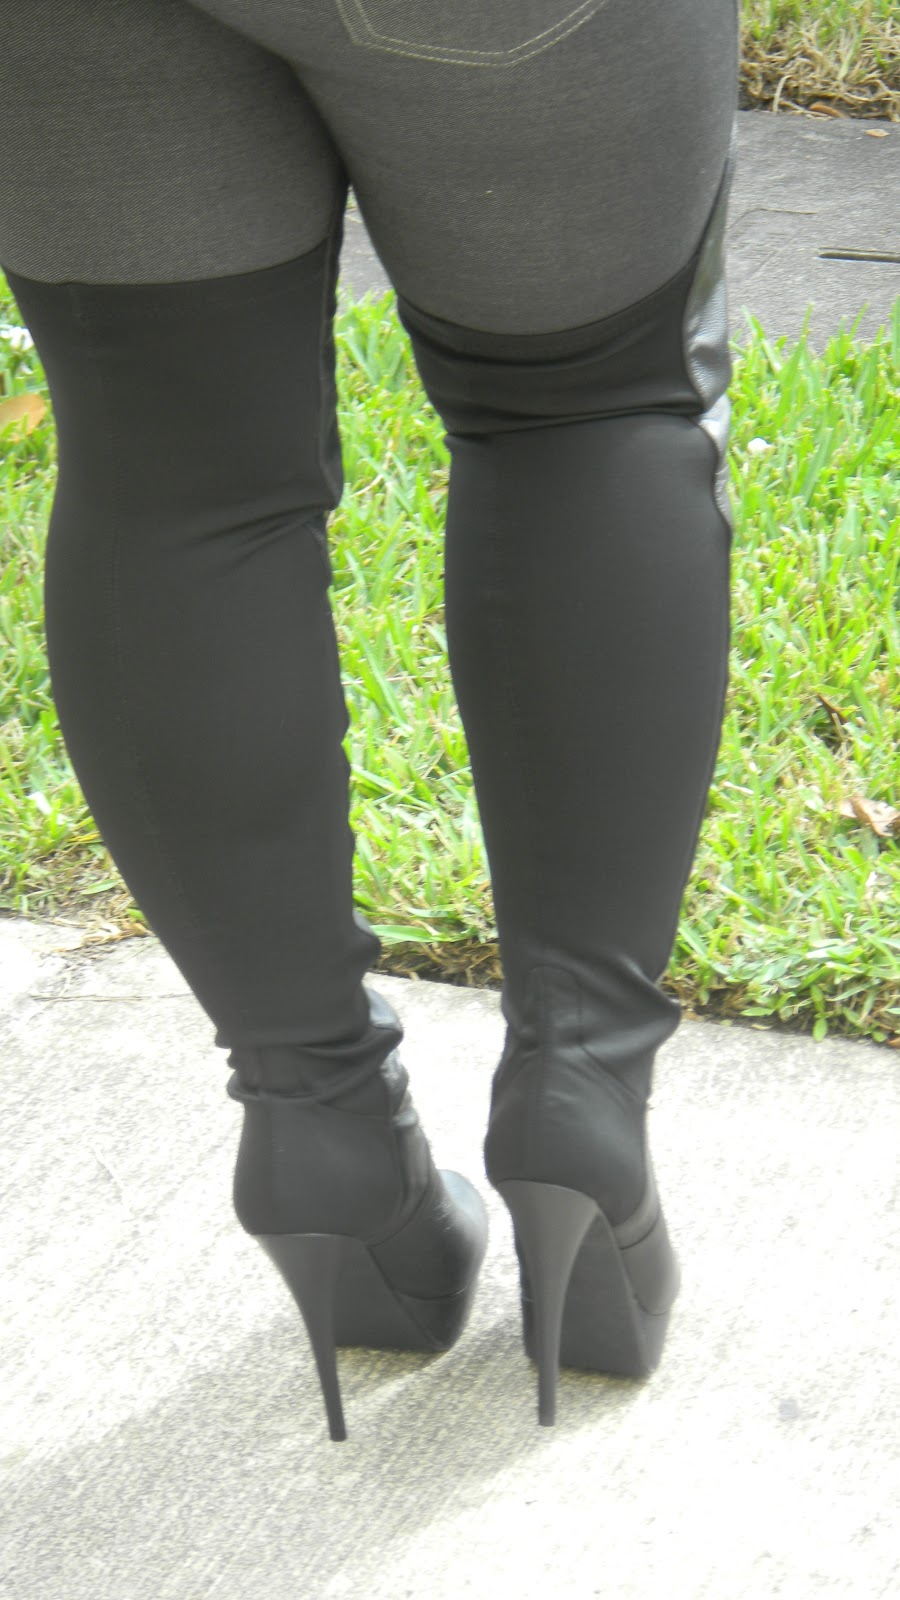 Over The Knee Boots For Big Calves Bsrjc Boots